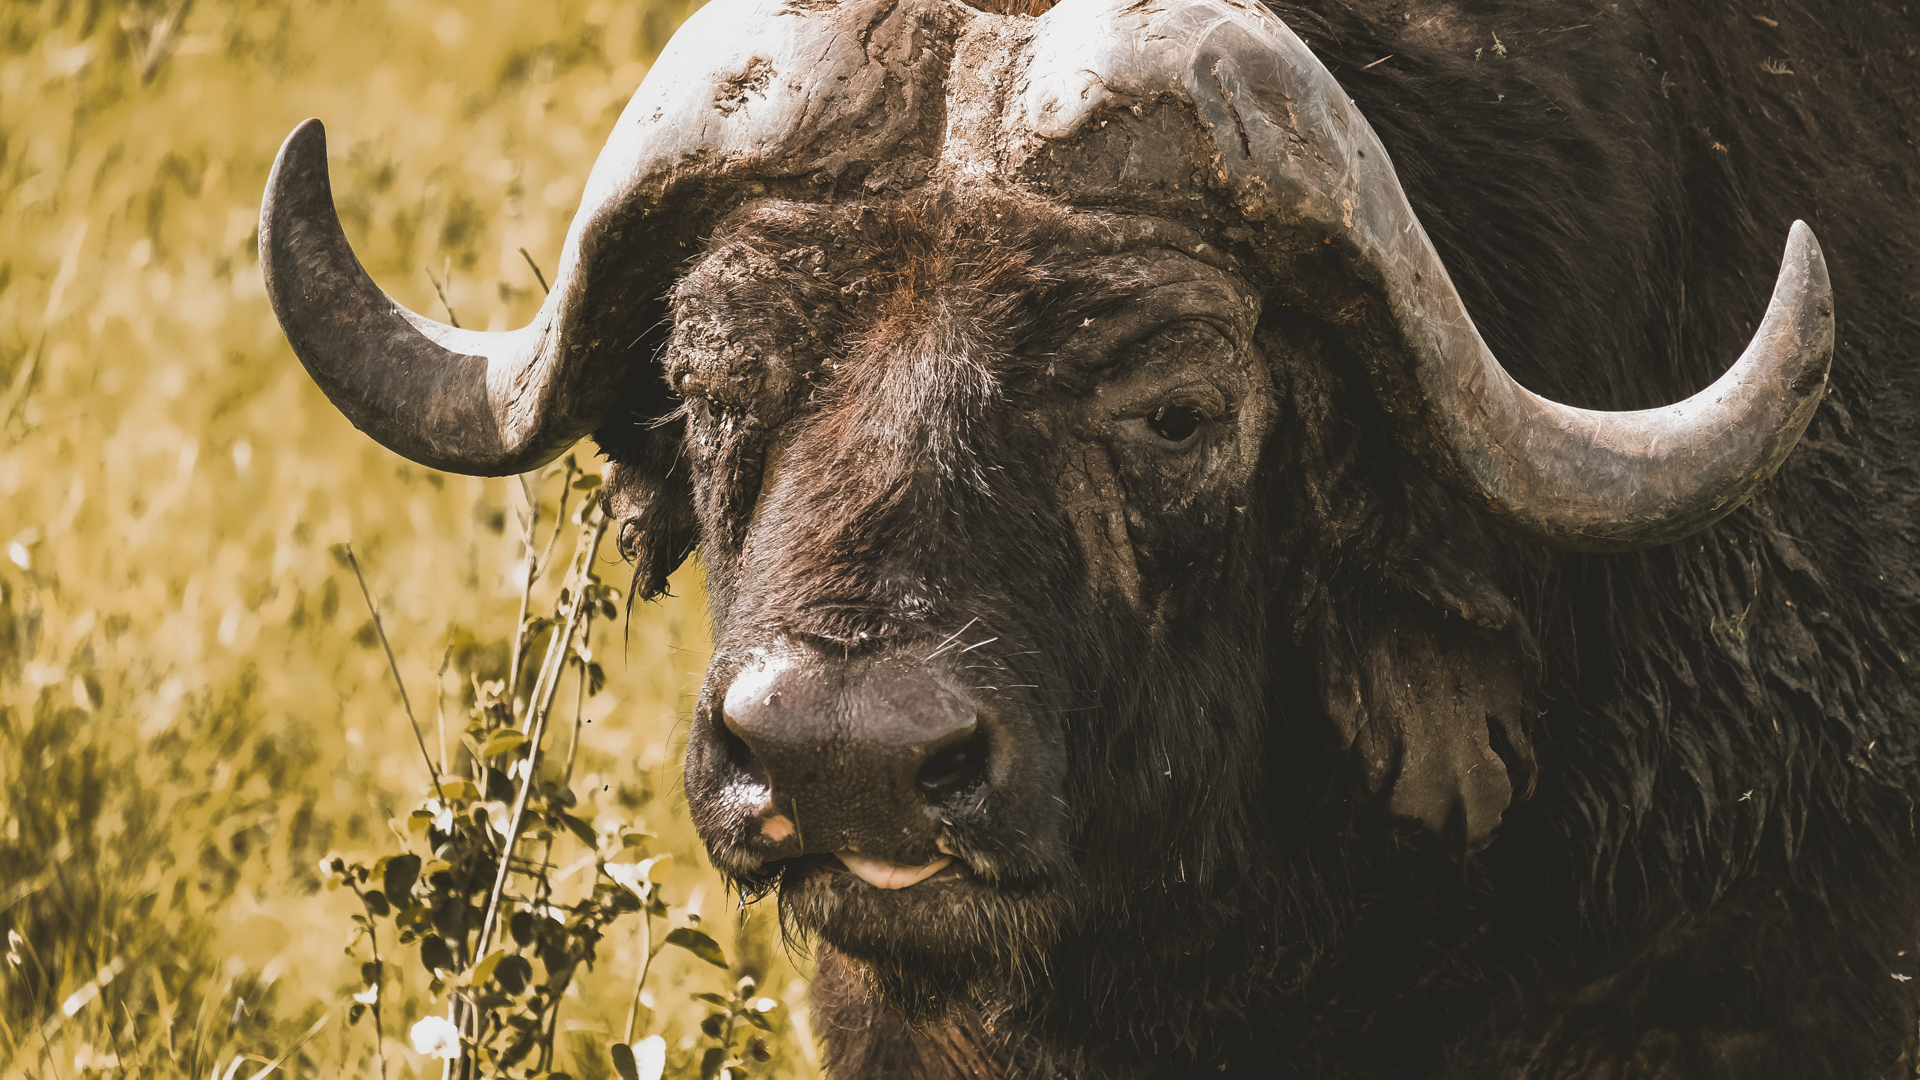 One of the Big Five - a cape buffalo - contemplating life in the Serengeti National Park, Tanzania